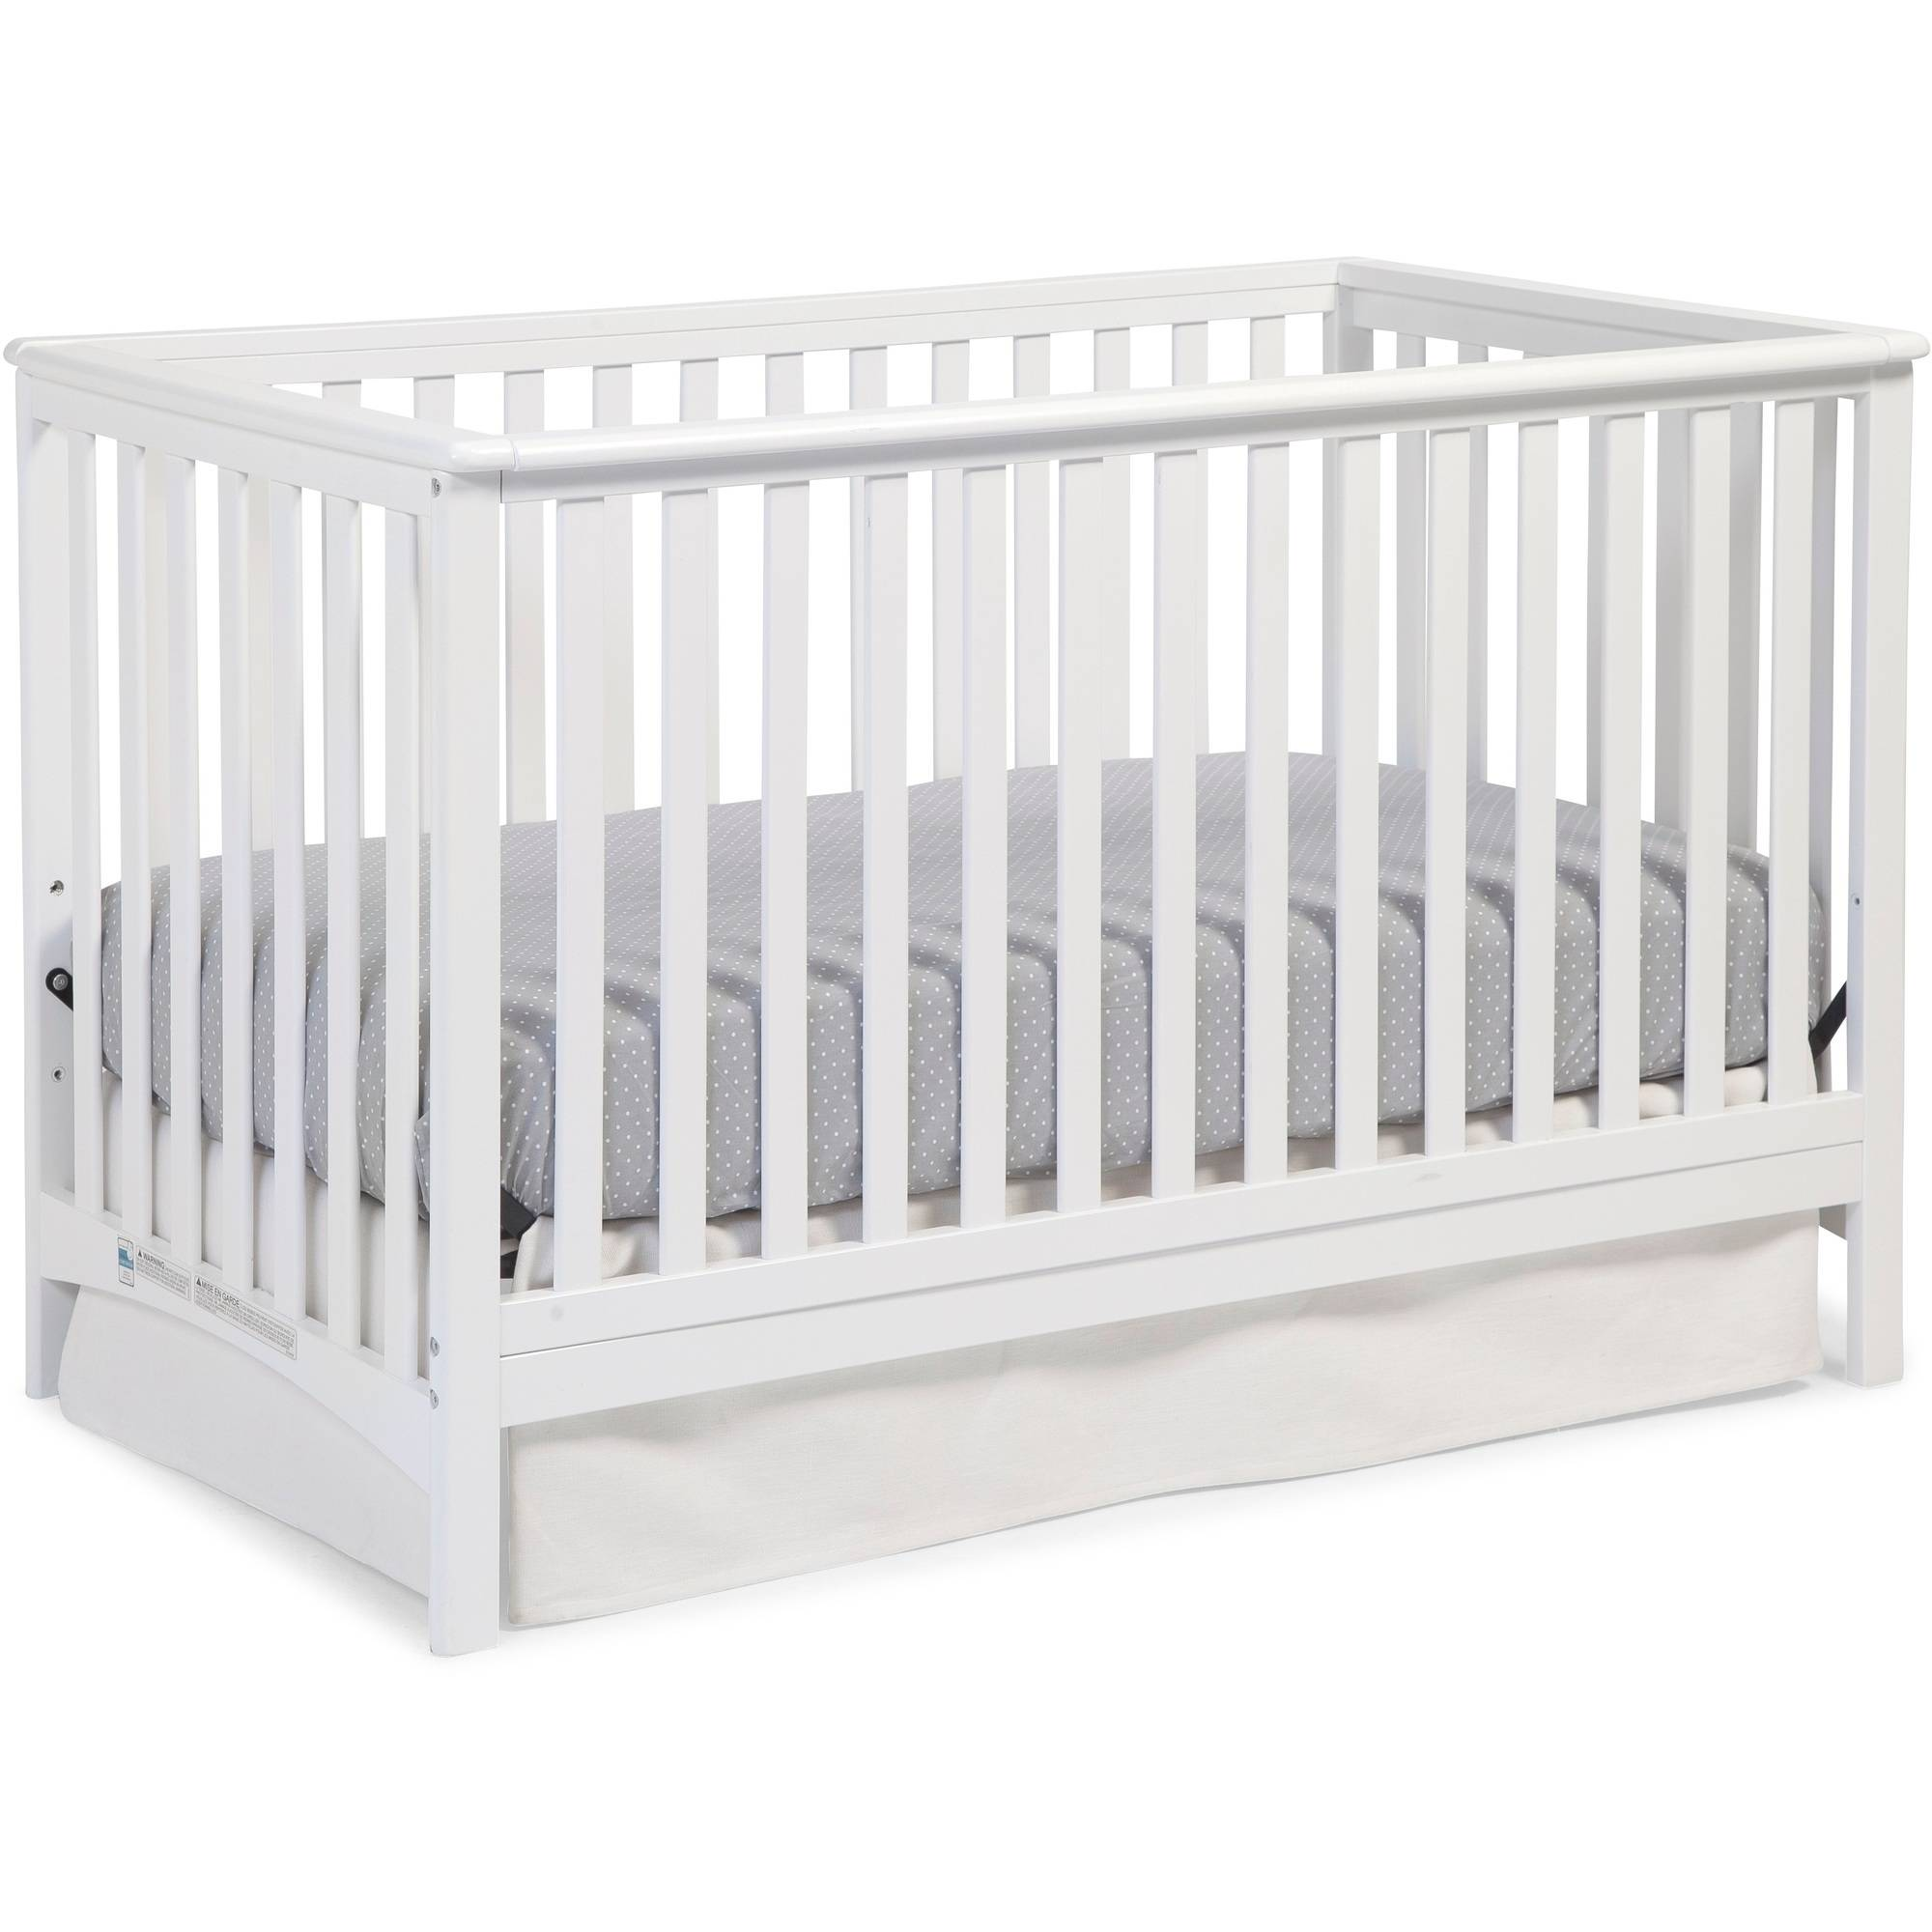 Storkcraft Hillcrest 4 in 1 Convertible Crib, Choose Your Finish